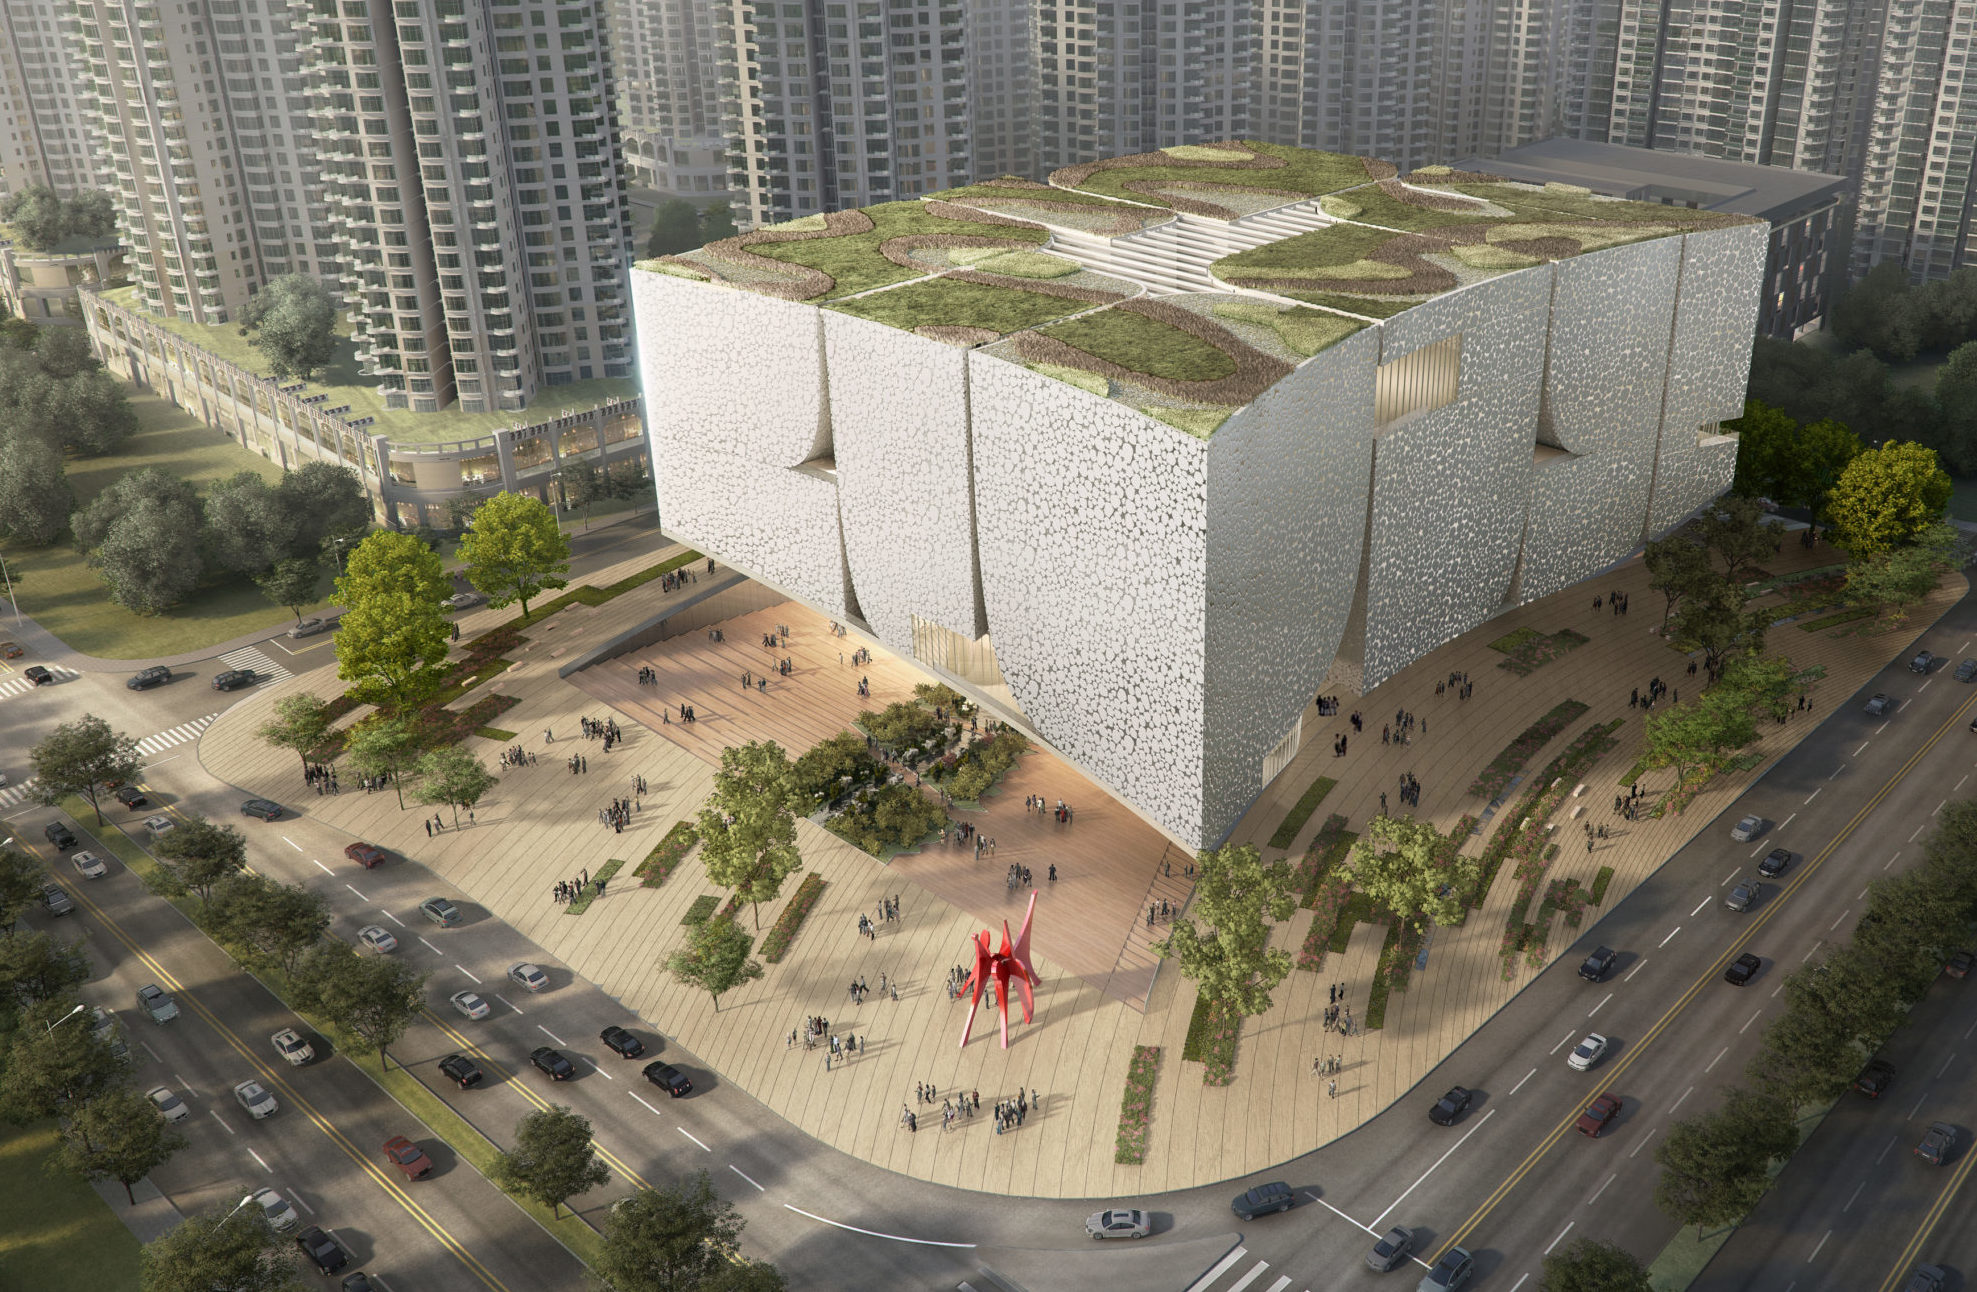 spatial practice architecture office Los Angeles Hong museum contemporary art baoan china birds eye view